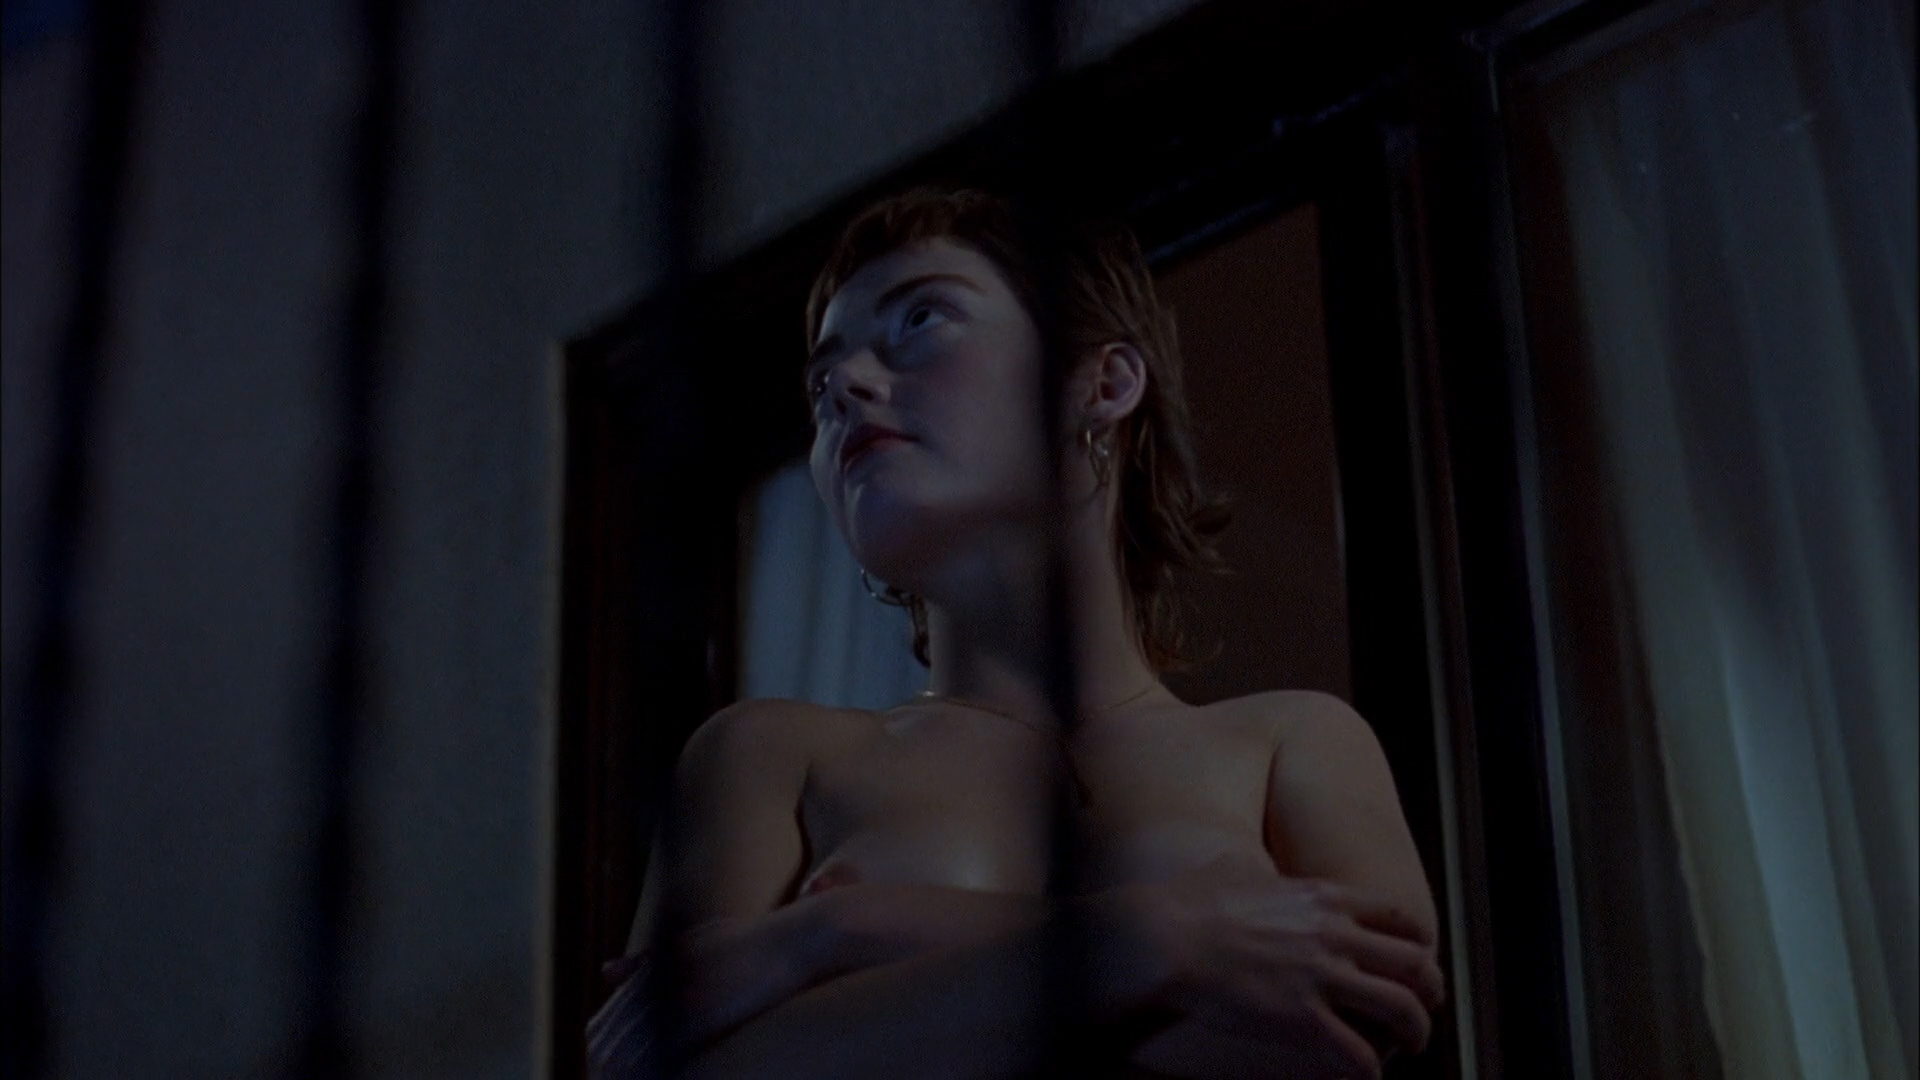 Camilla Rutherford nude full frontal and Juliette Lewis nude side boob - Picture Claire (2001) hd1080p (1)